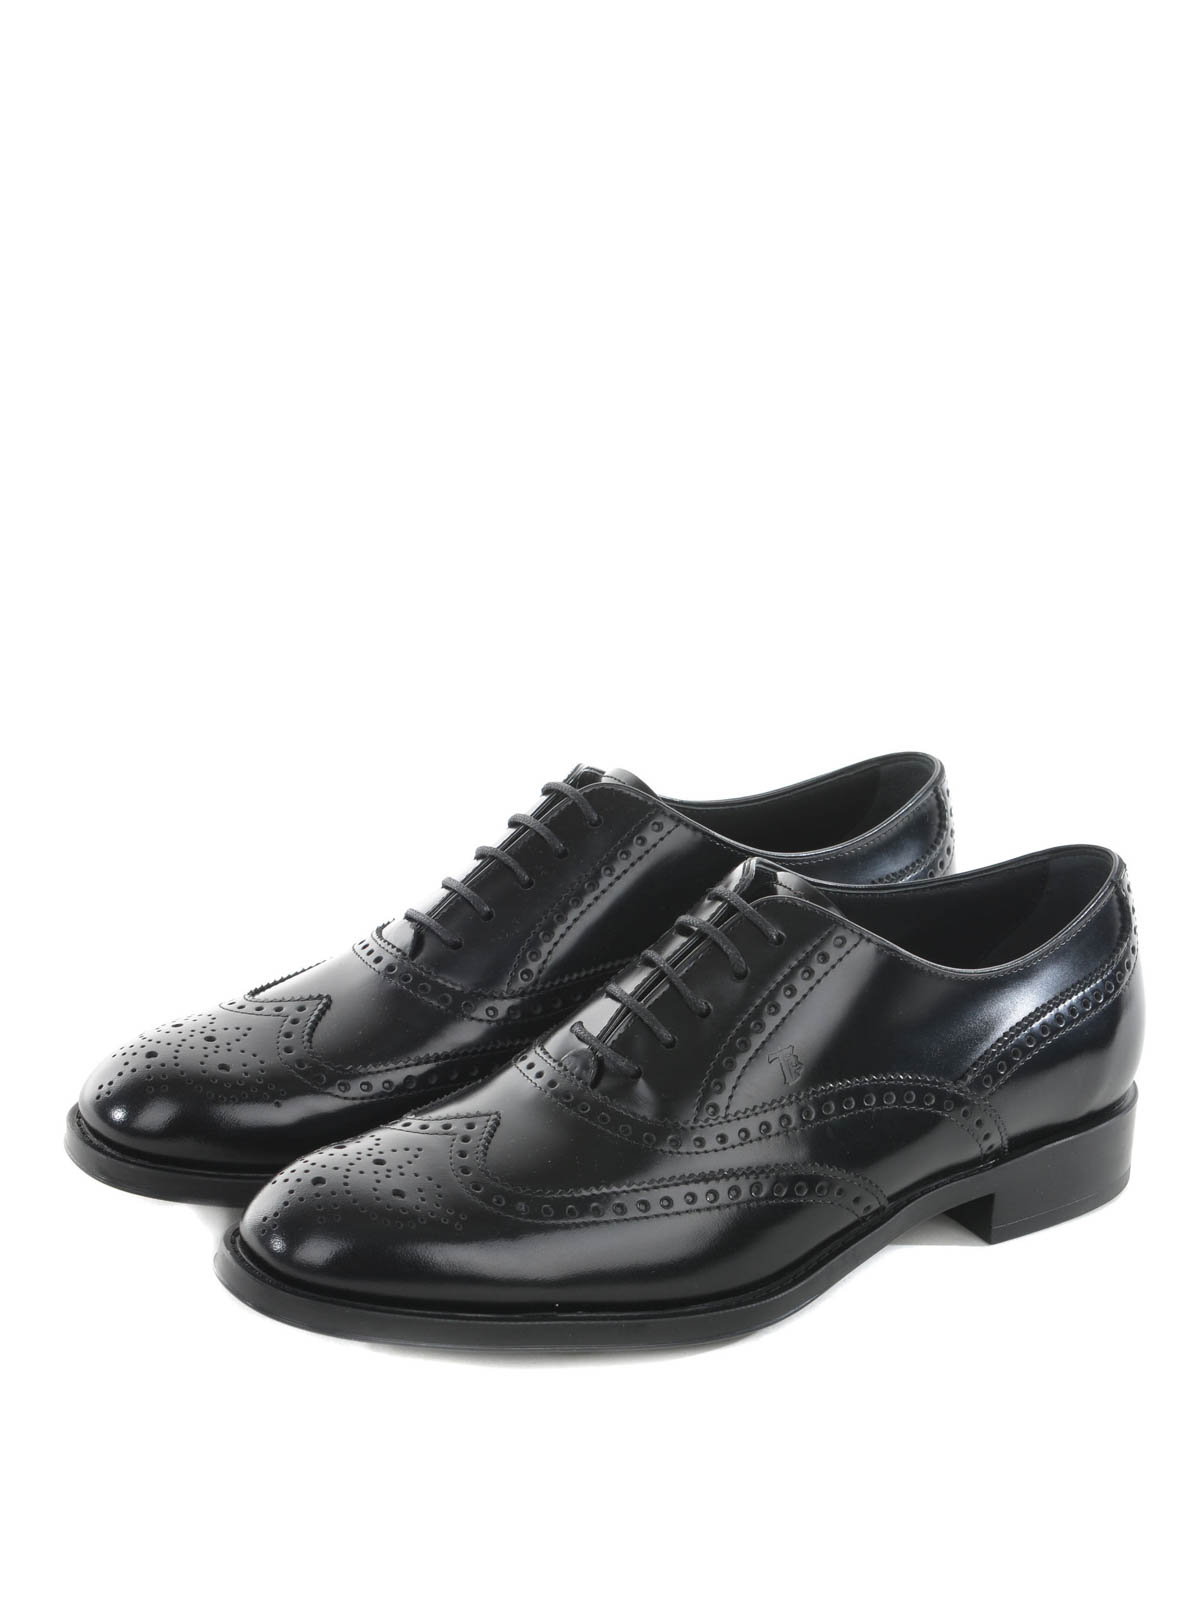 Tod's Leather Brogue Loafers outlet 100% guaranteed sale Manchester cheap sale footaction discount geniue stockist avIvIU6muN